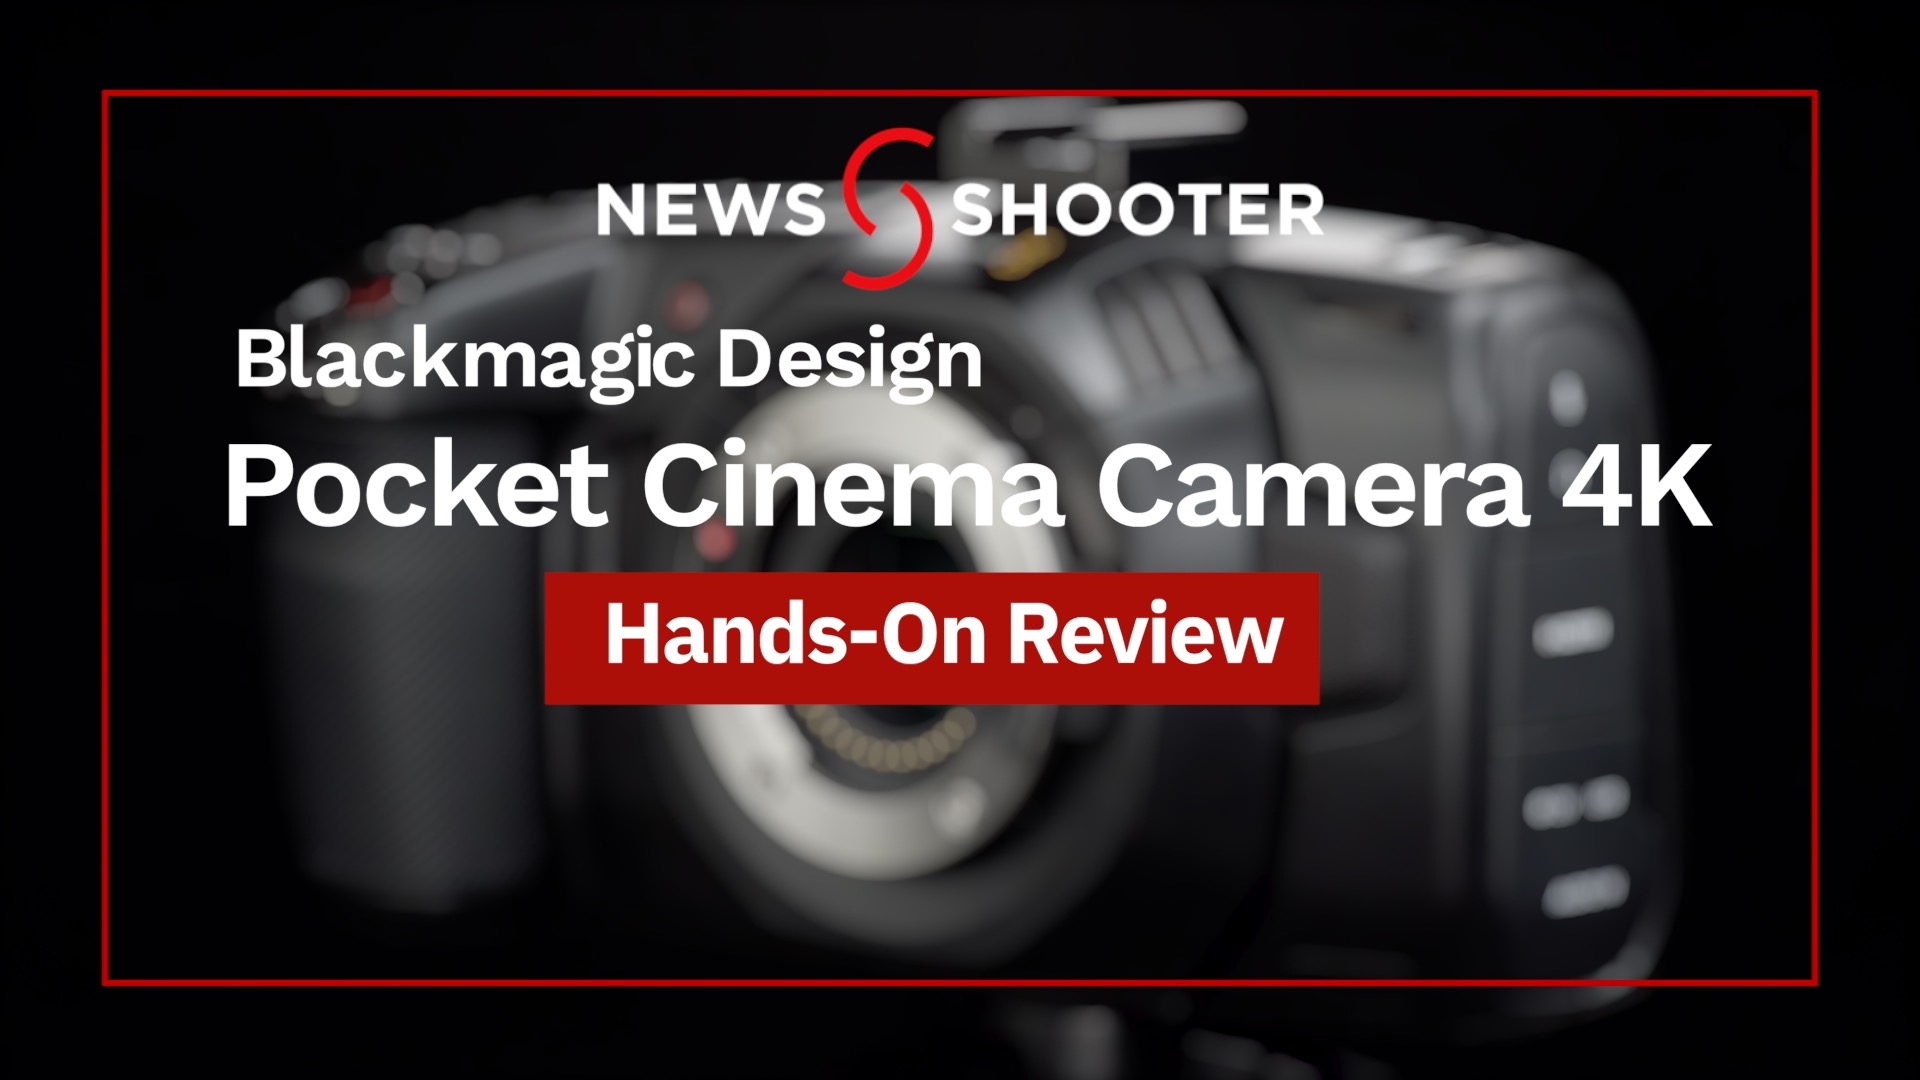 Blackmagic Design Pocket Cinema Camera 4k Review Newsshooter